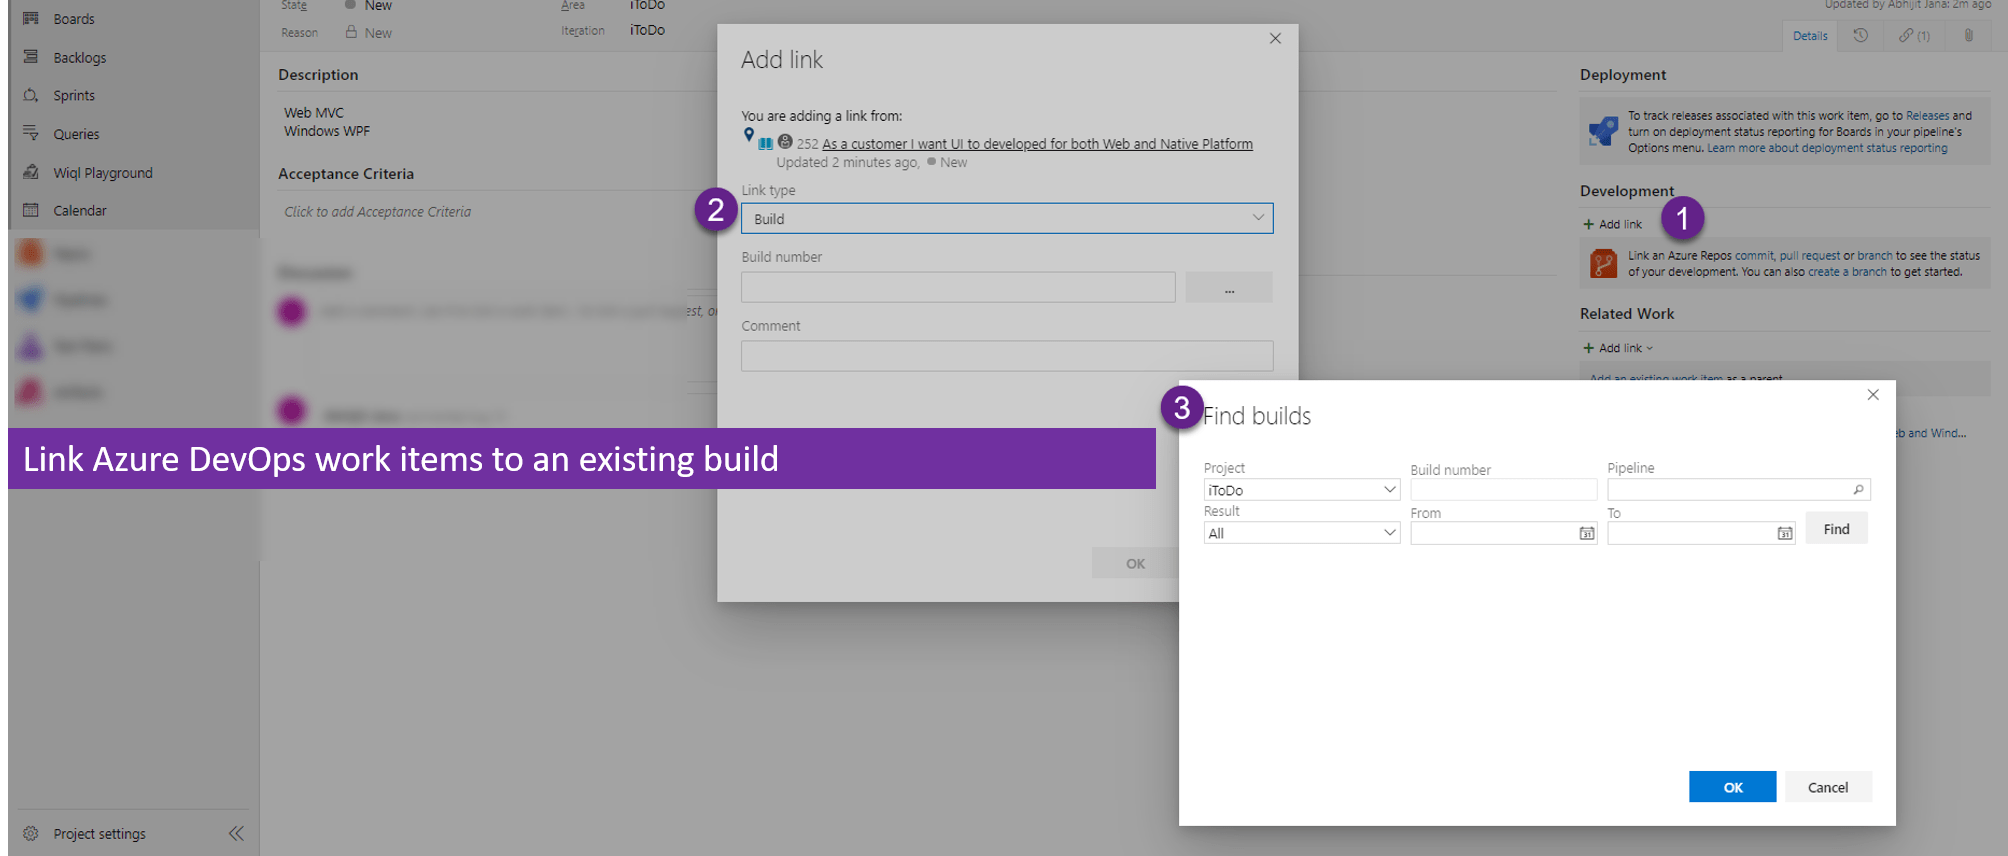 Link Azure DevOps work items to an existing build